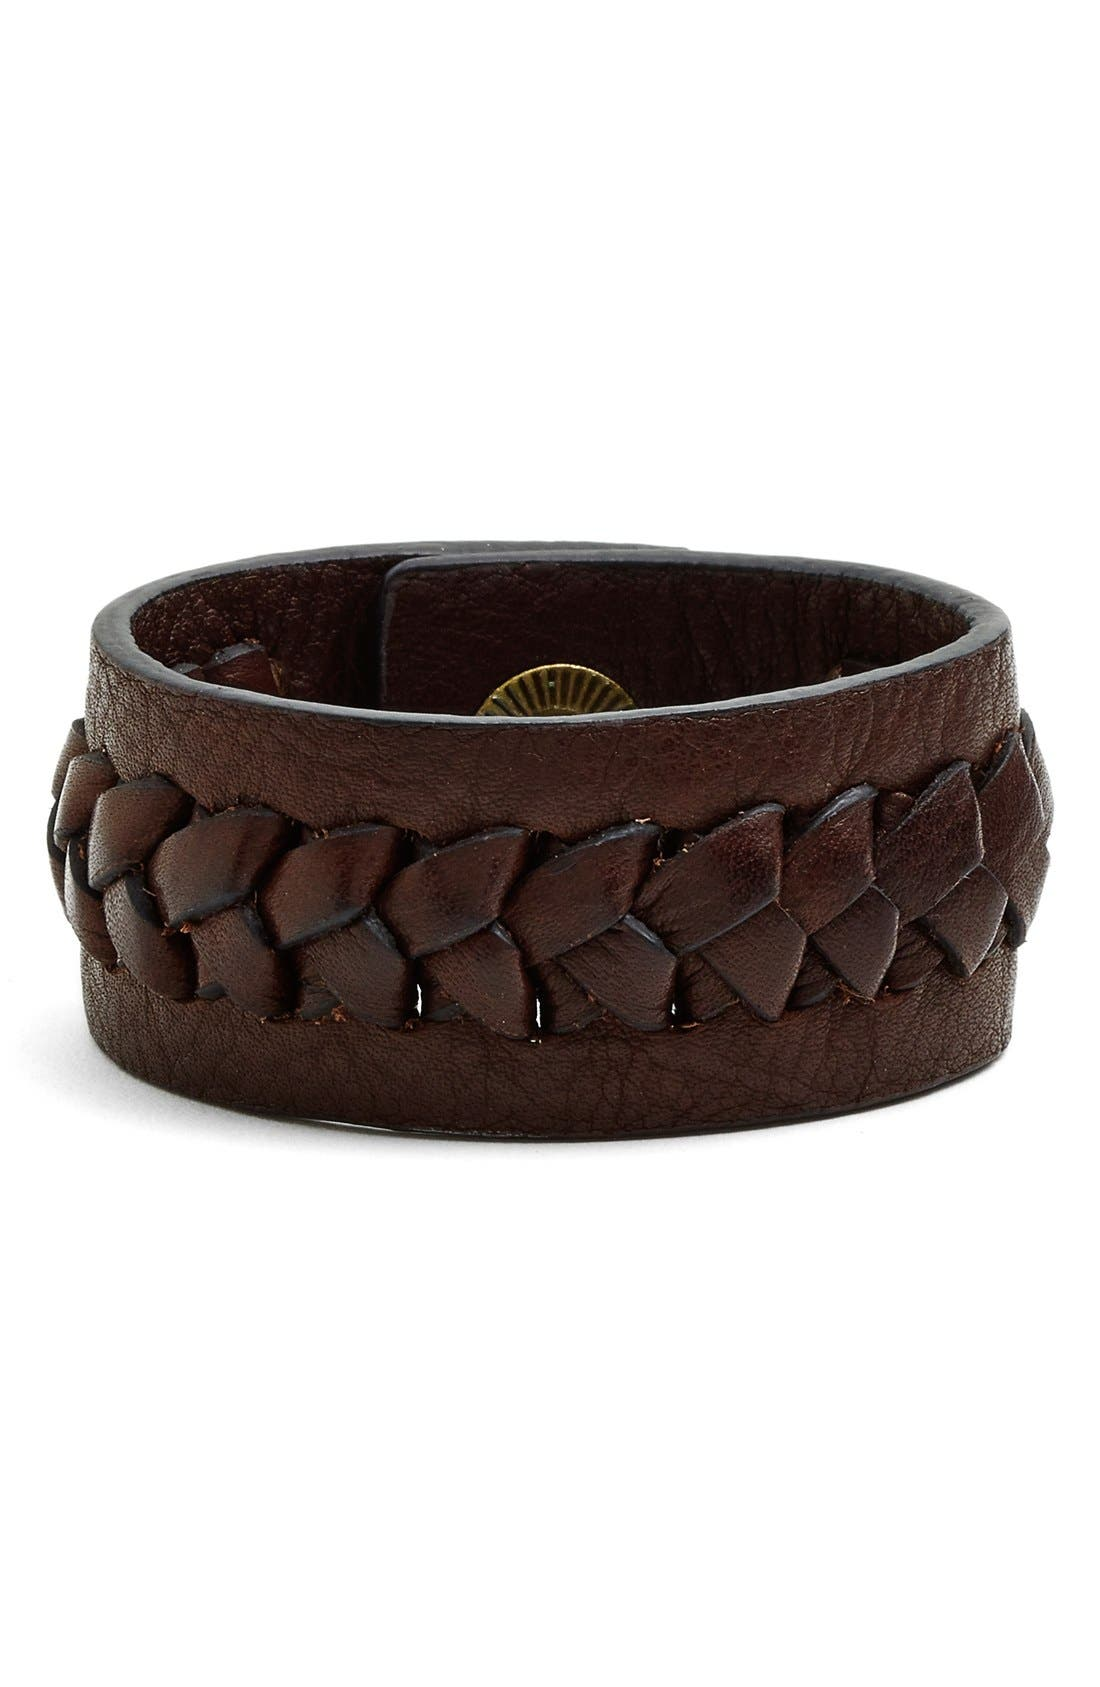 Alternate Image 1 Selected - Frye 'Jenny' Braided Leather Bracelet